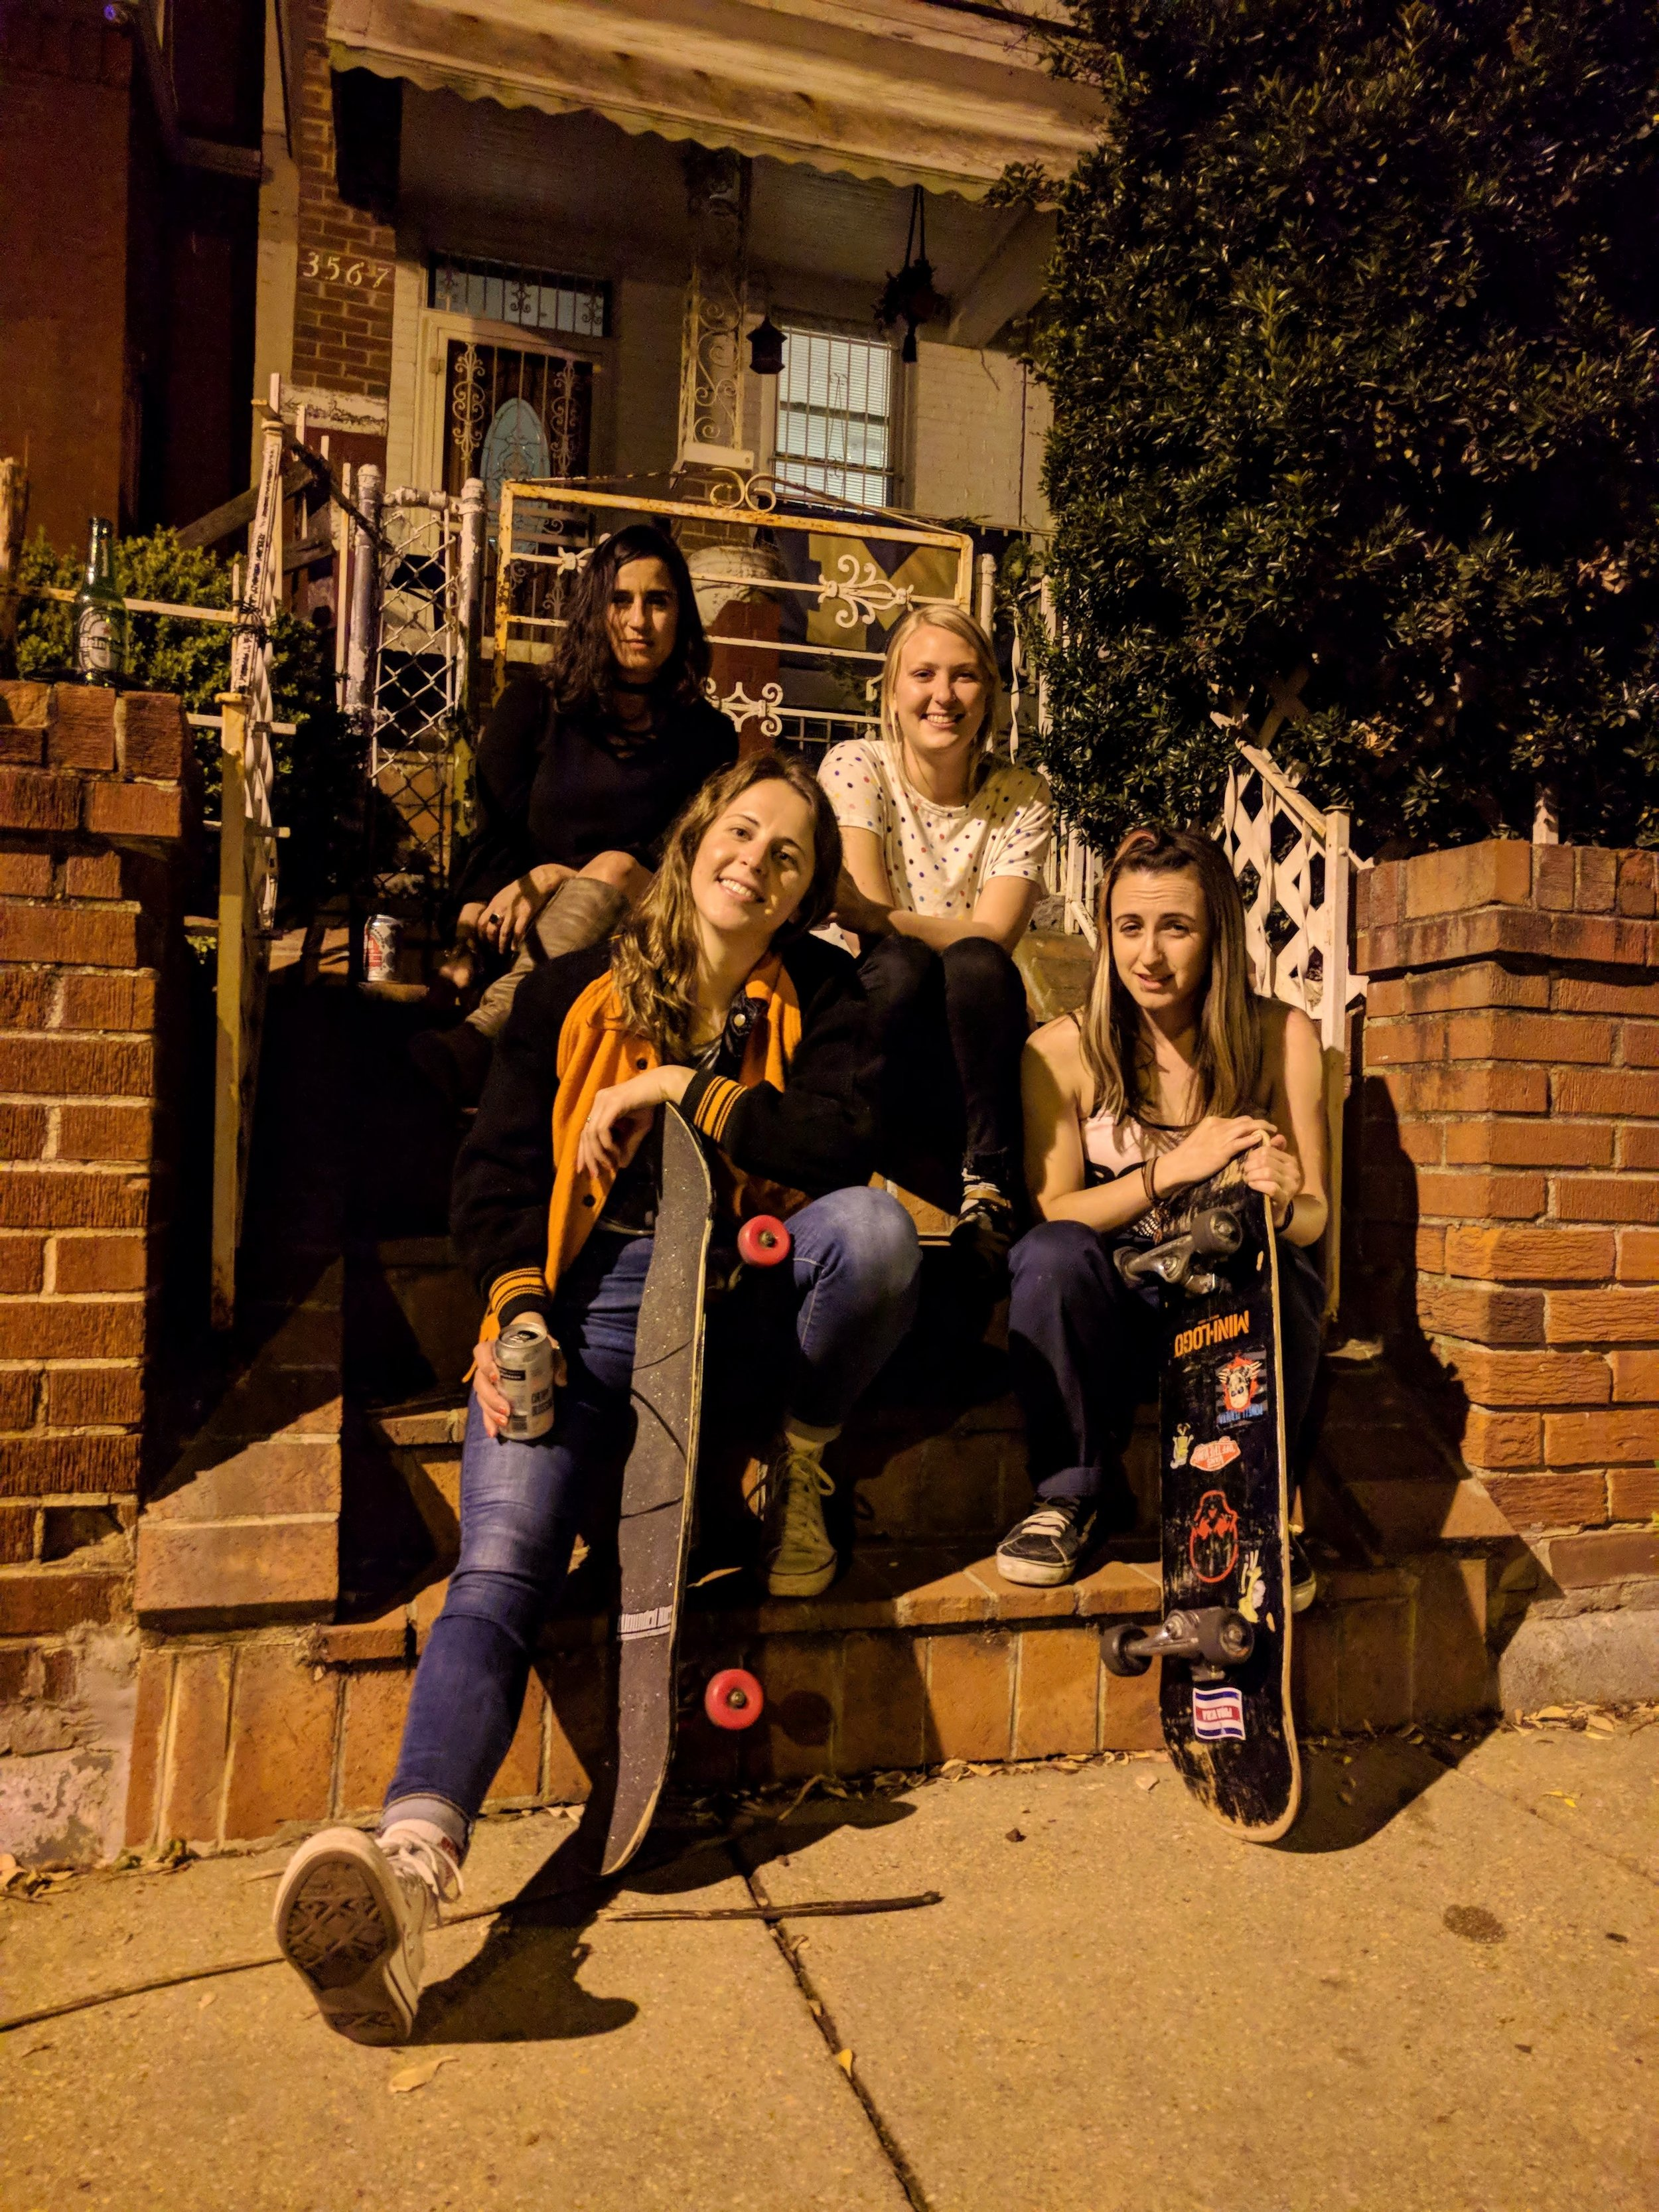 Stoop chillers